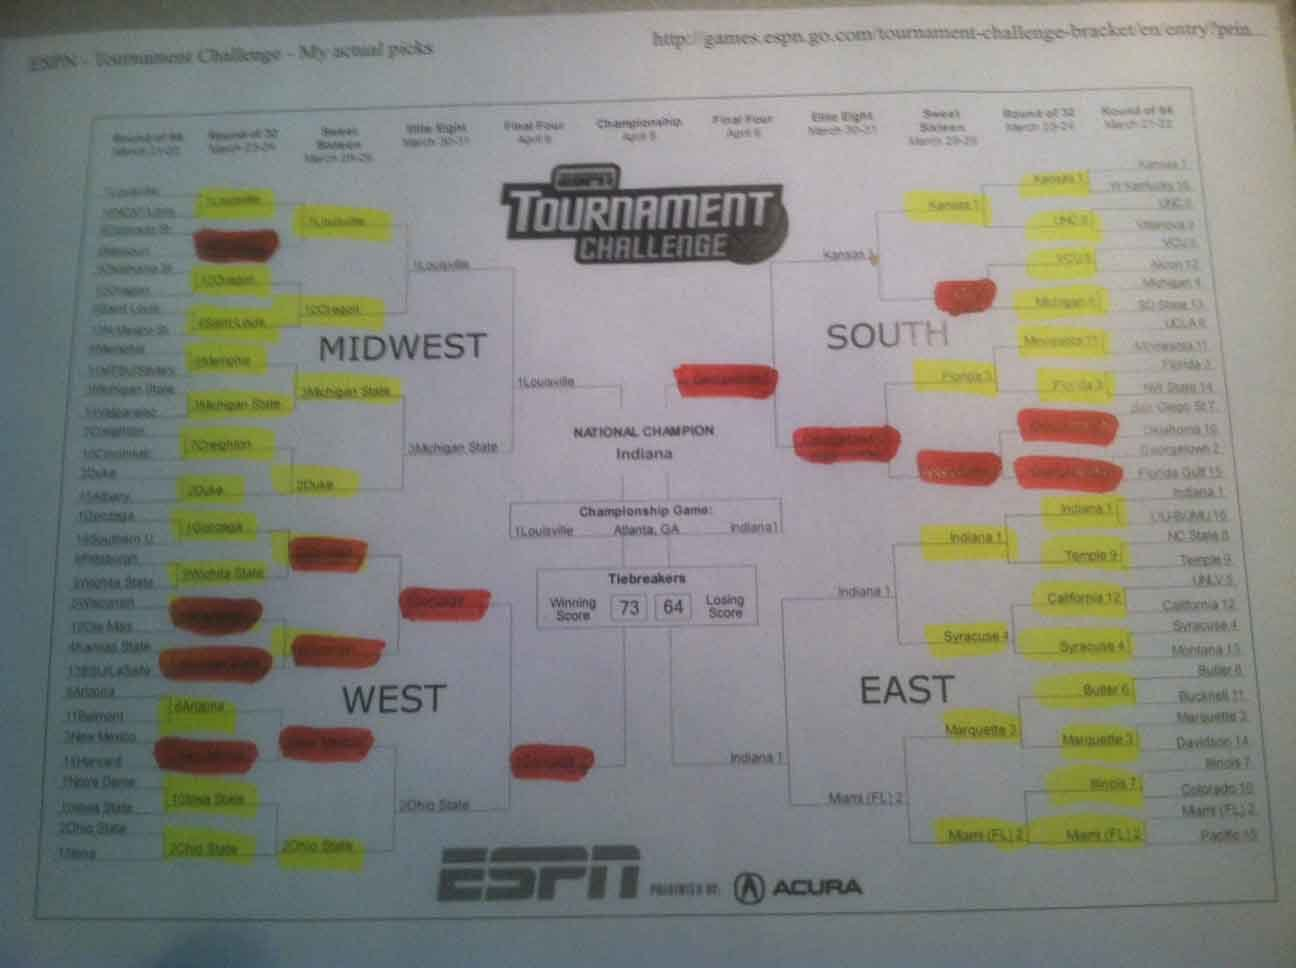 The West region was the death of many brackets this year. (Source: RNN)